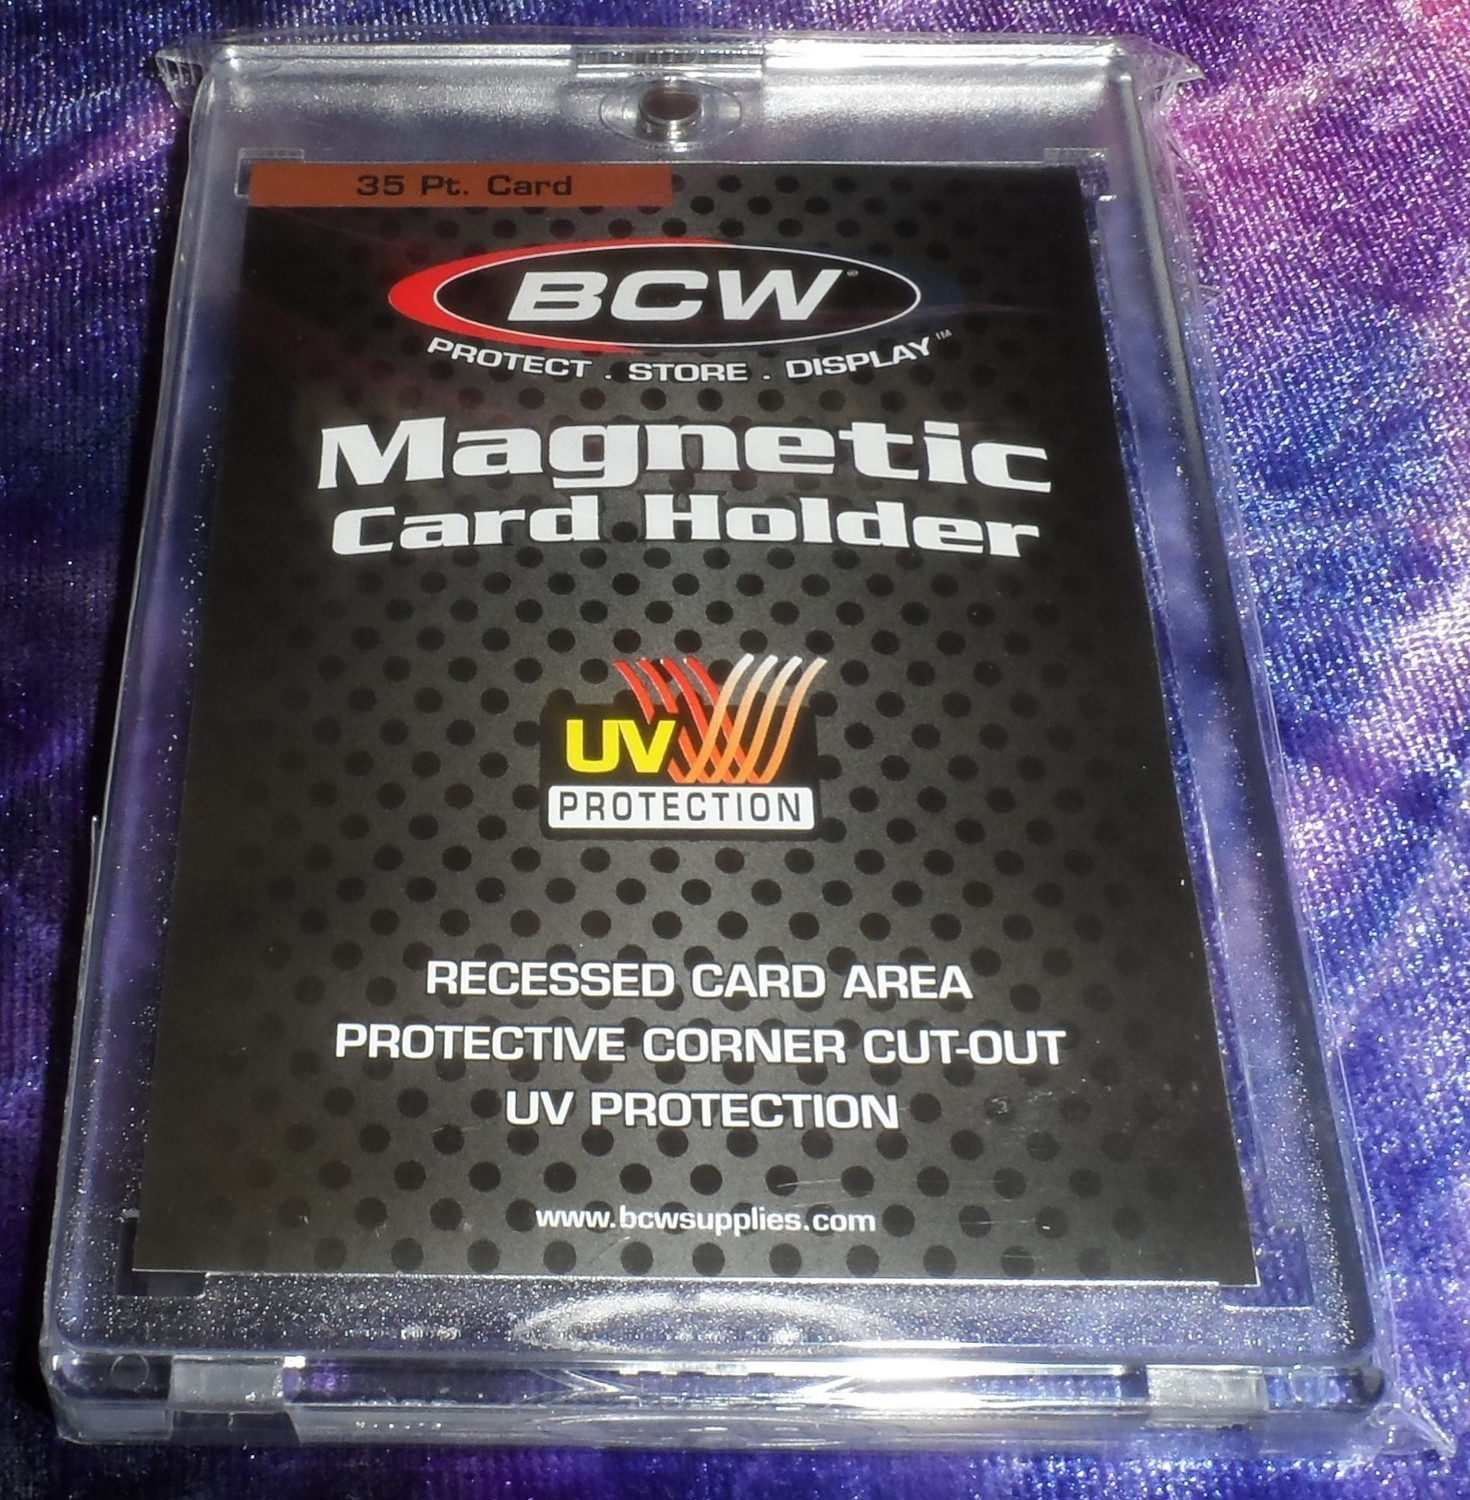 BCW MAGNETIC CARD HOLDER - 35 PT. Thickness